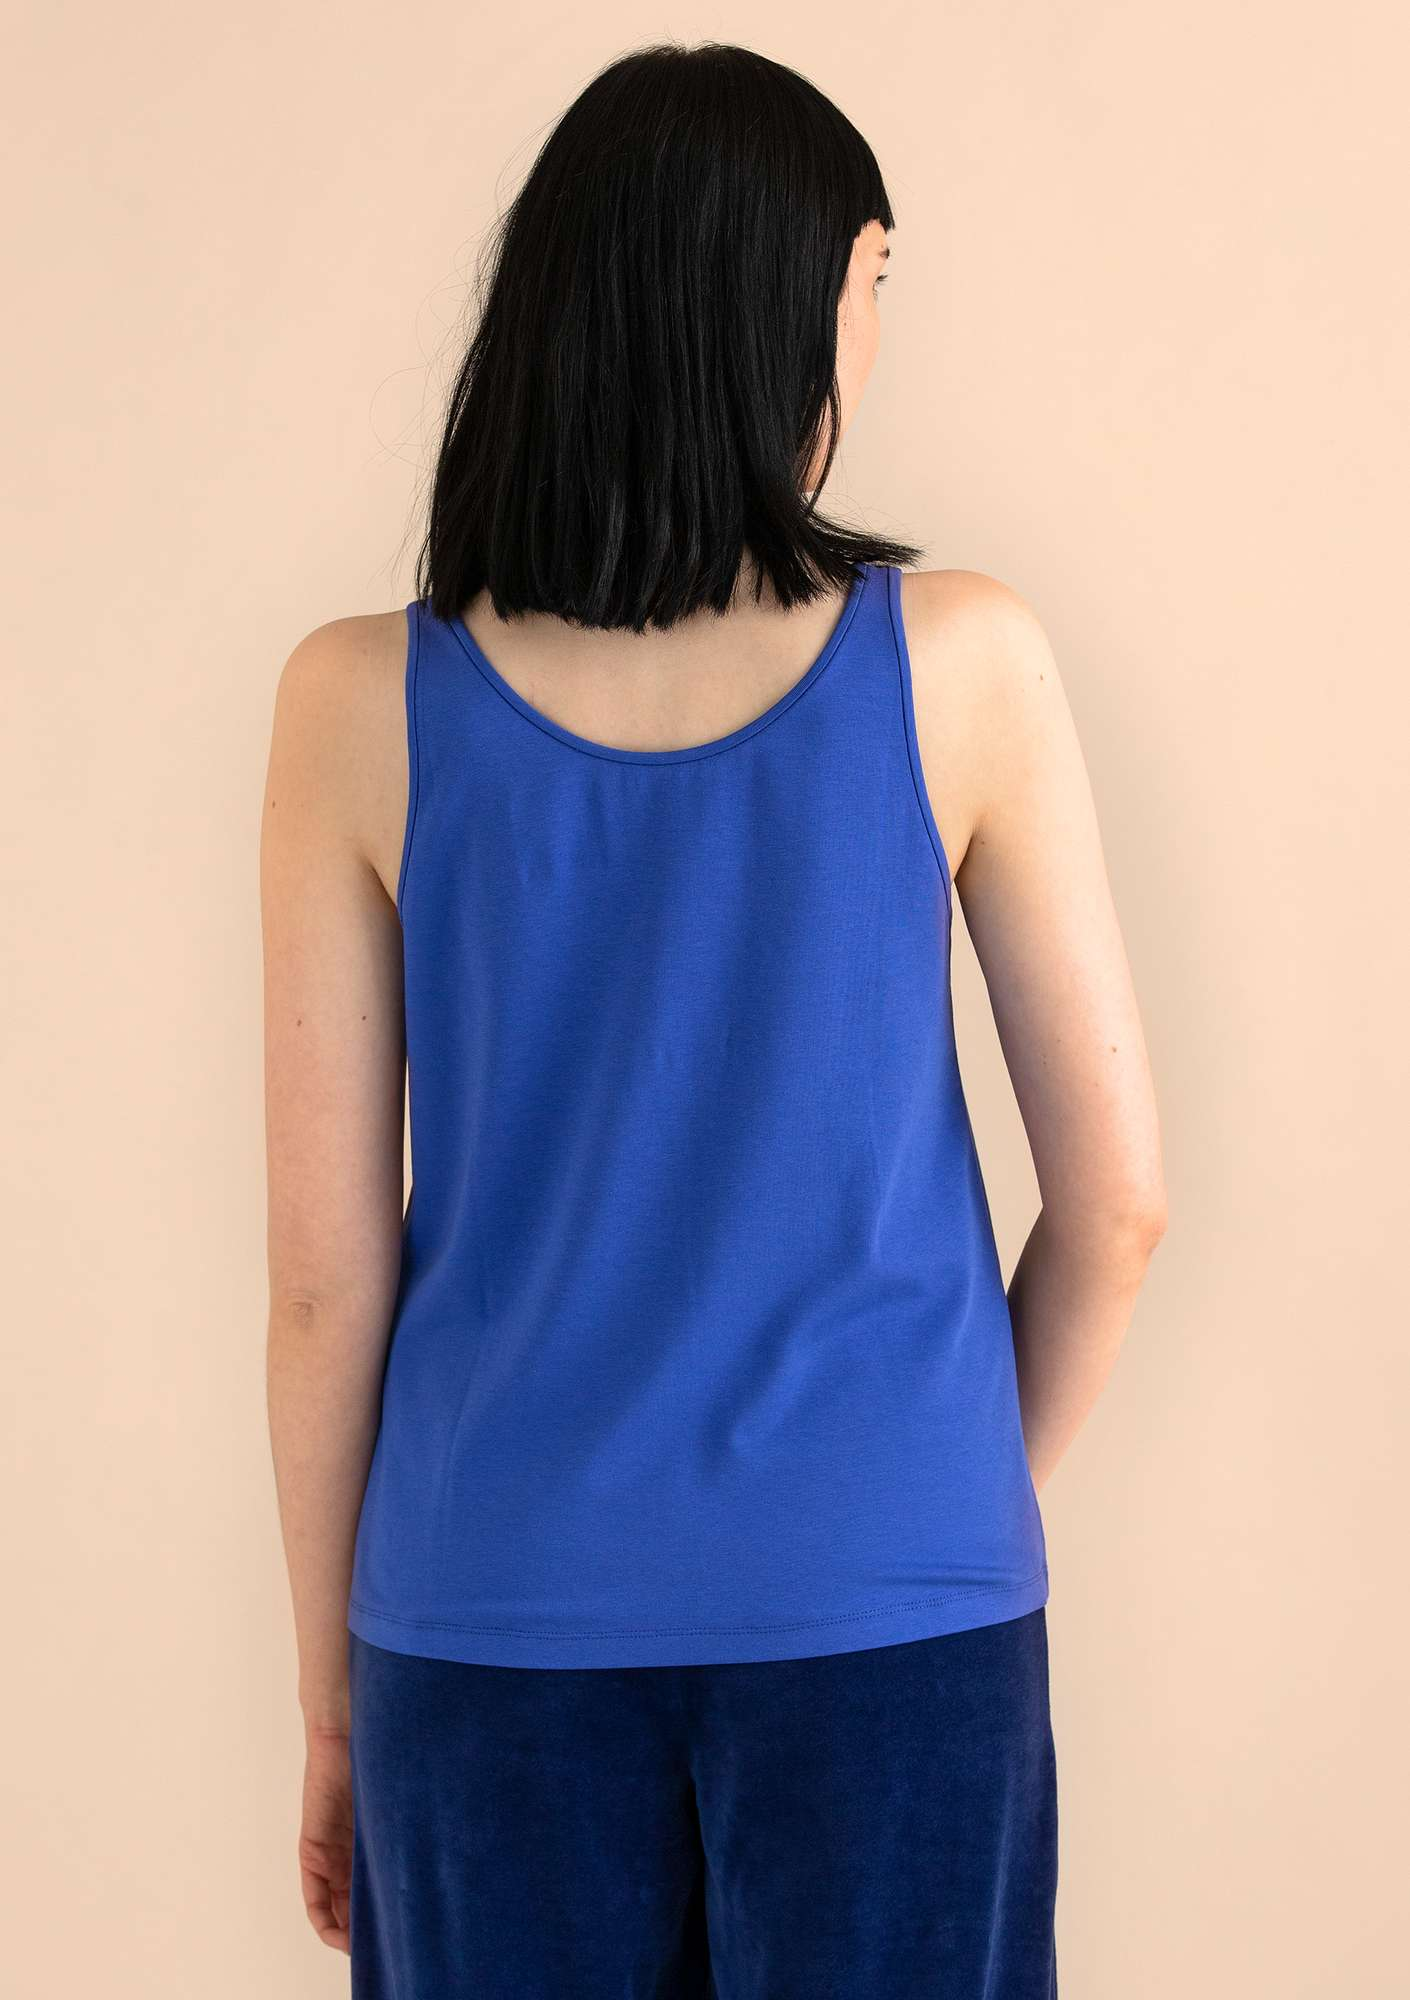 VIGG tank top in modal/organic cotton/elastane lupin